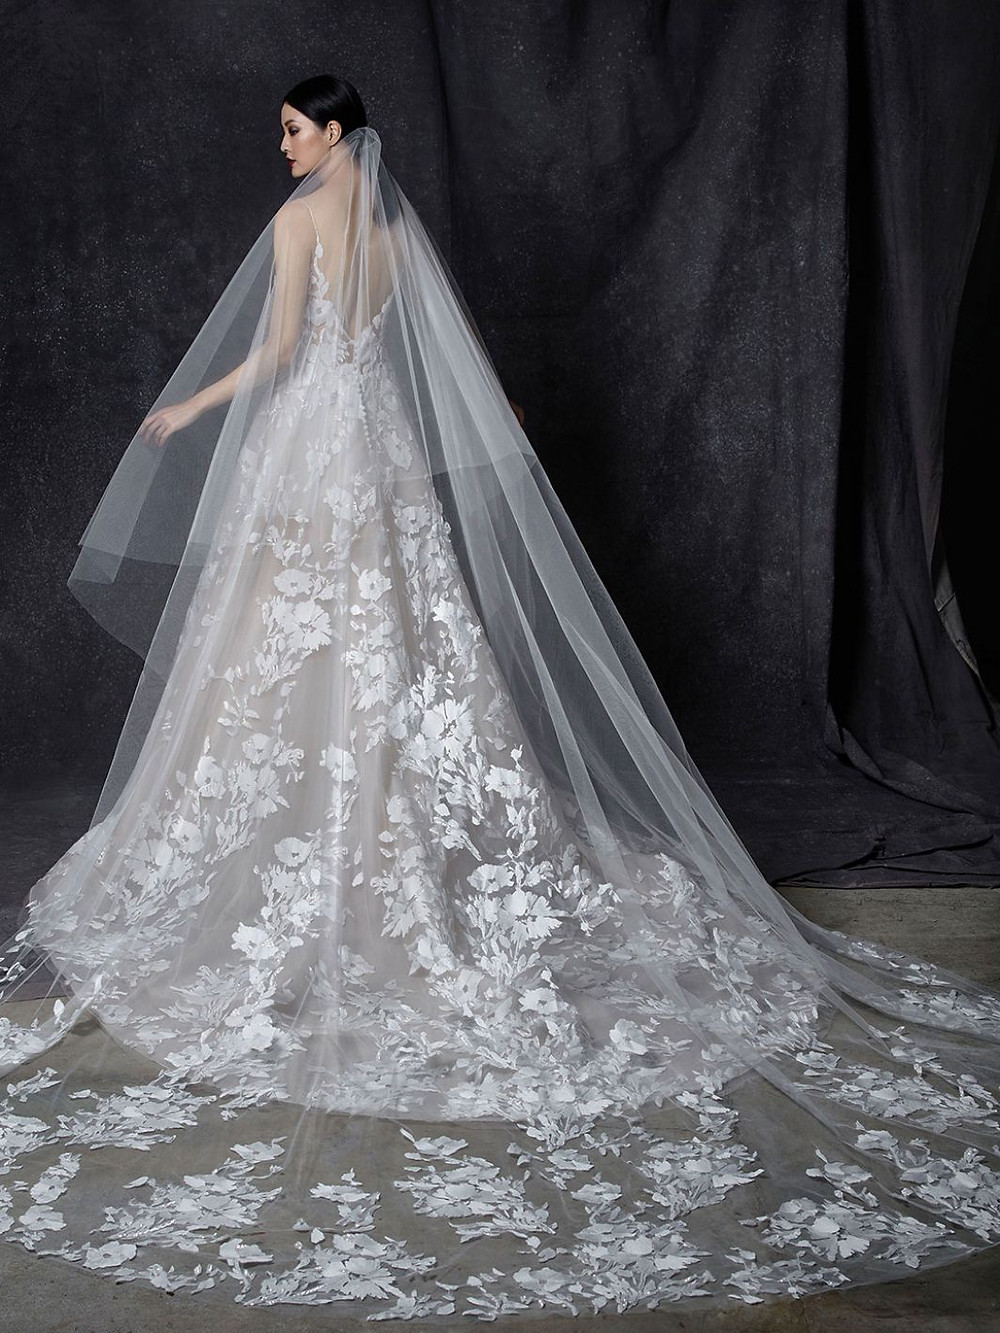 An Enzoani ball gown wedding dress with thin straps, floral print and a tulle veil